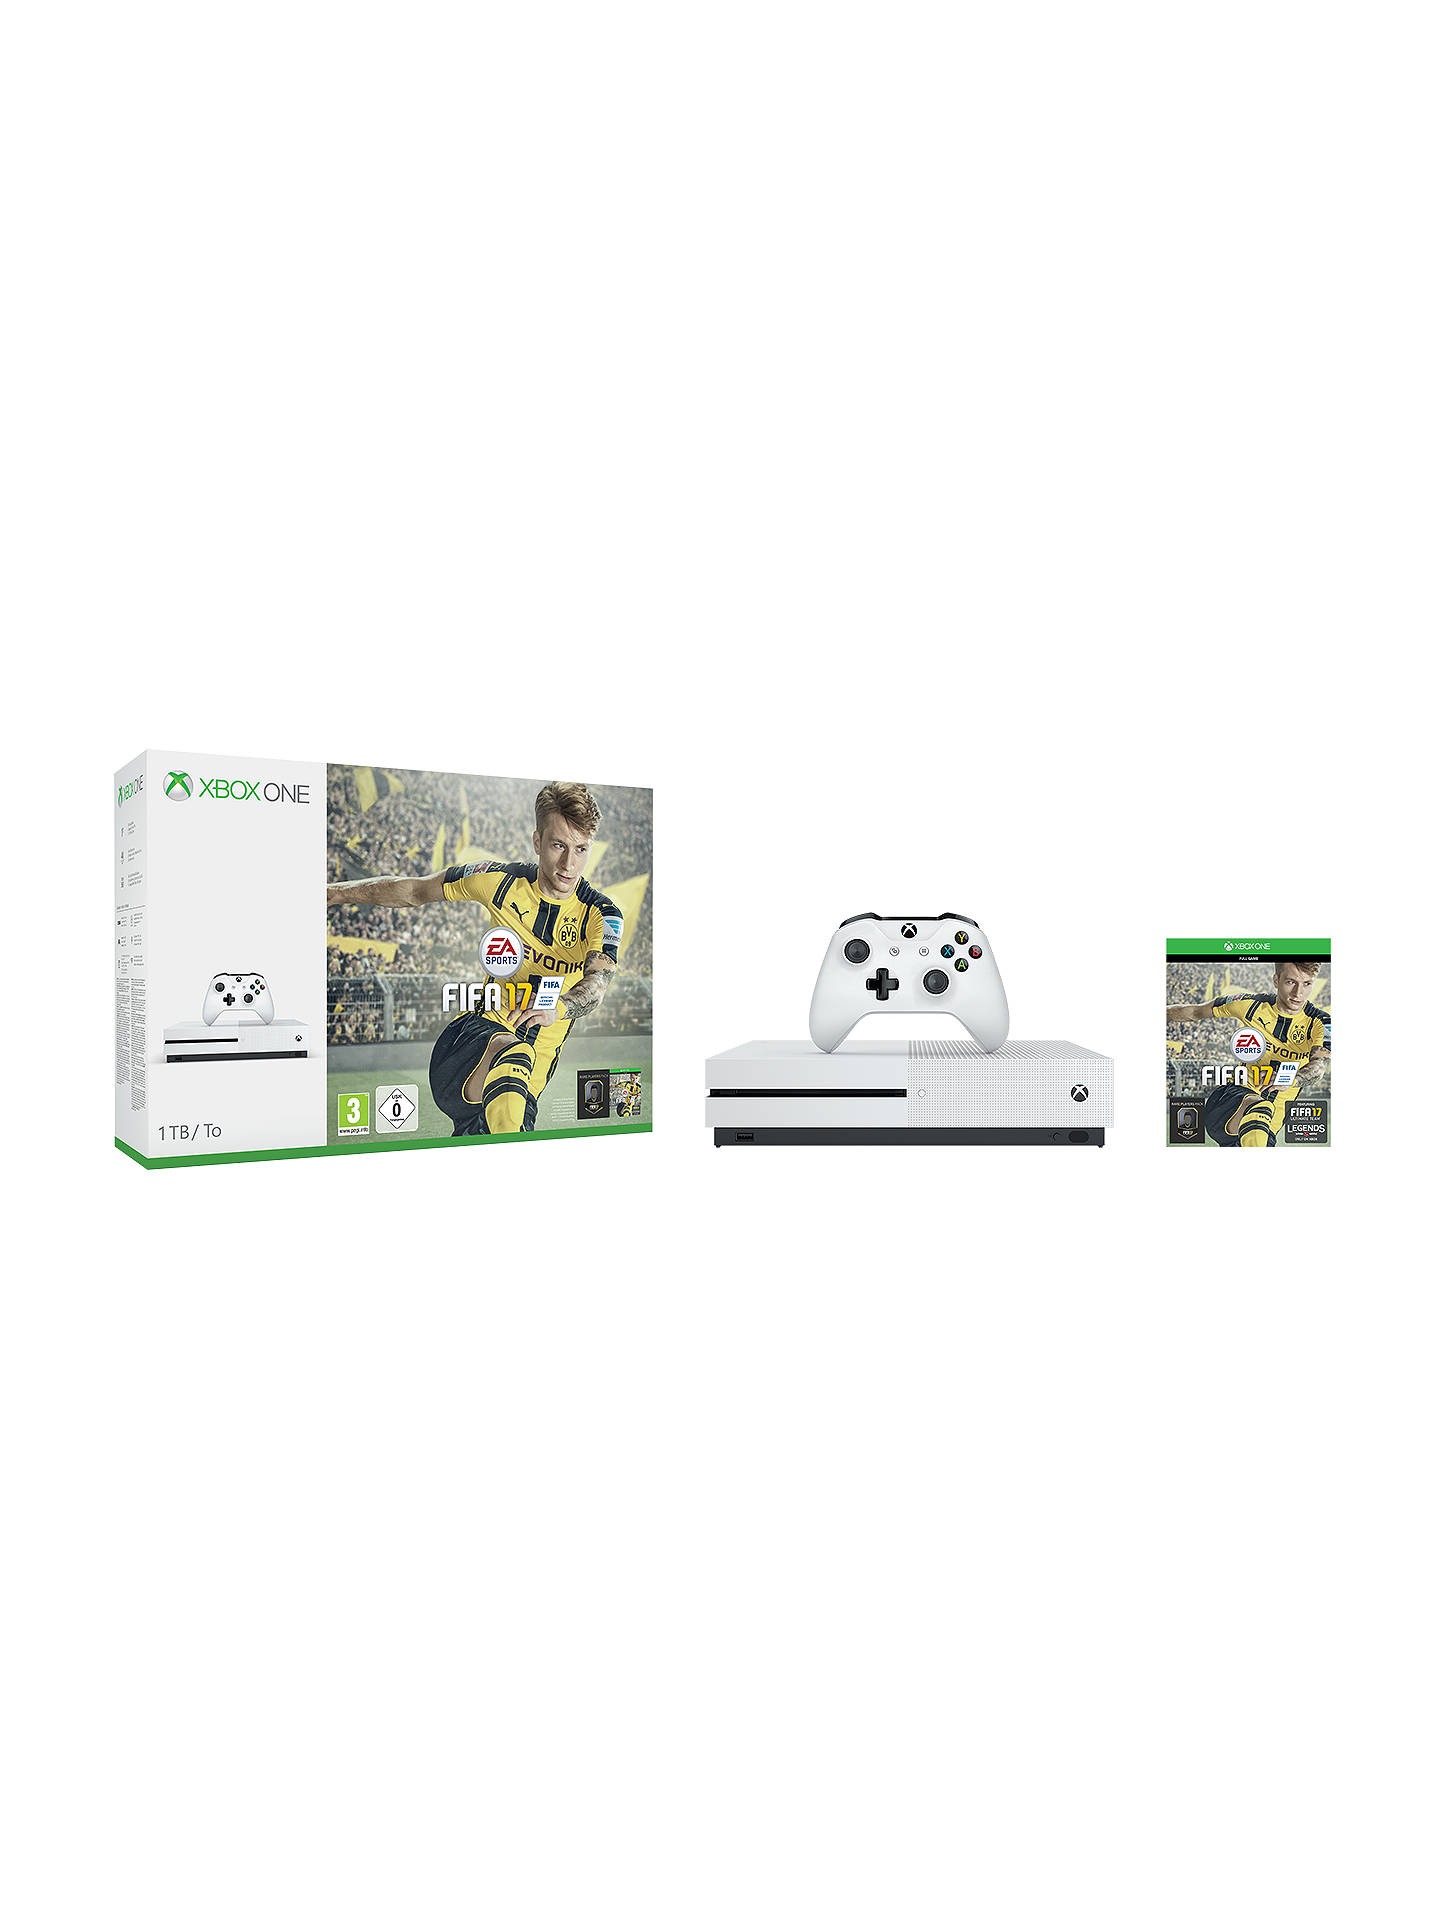 Microsoft Xbox One S Console, 1TB, with FIFA 17 Download